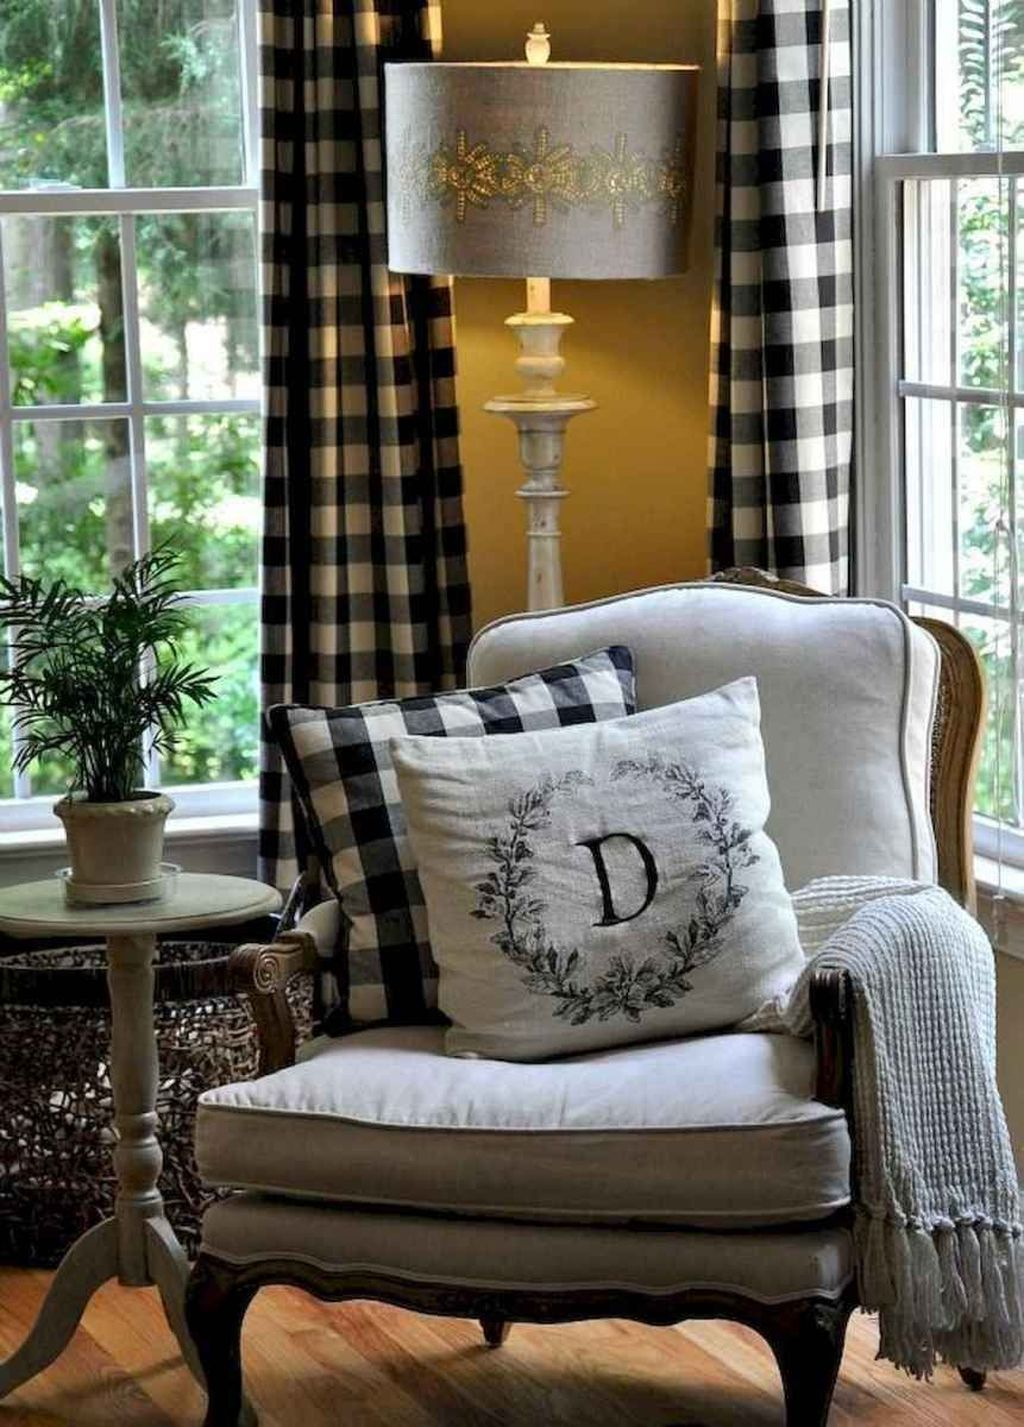 Dreamy French Home Decoration Ideas To Try In Your Home 02